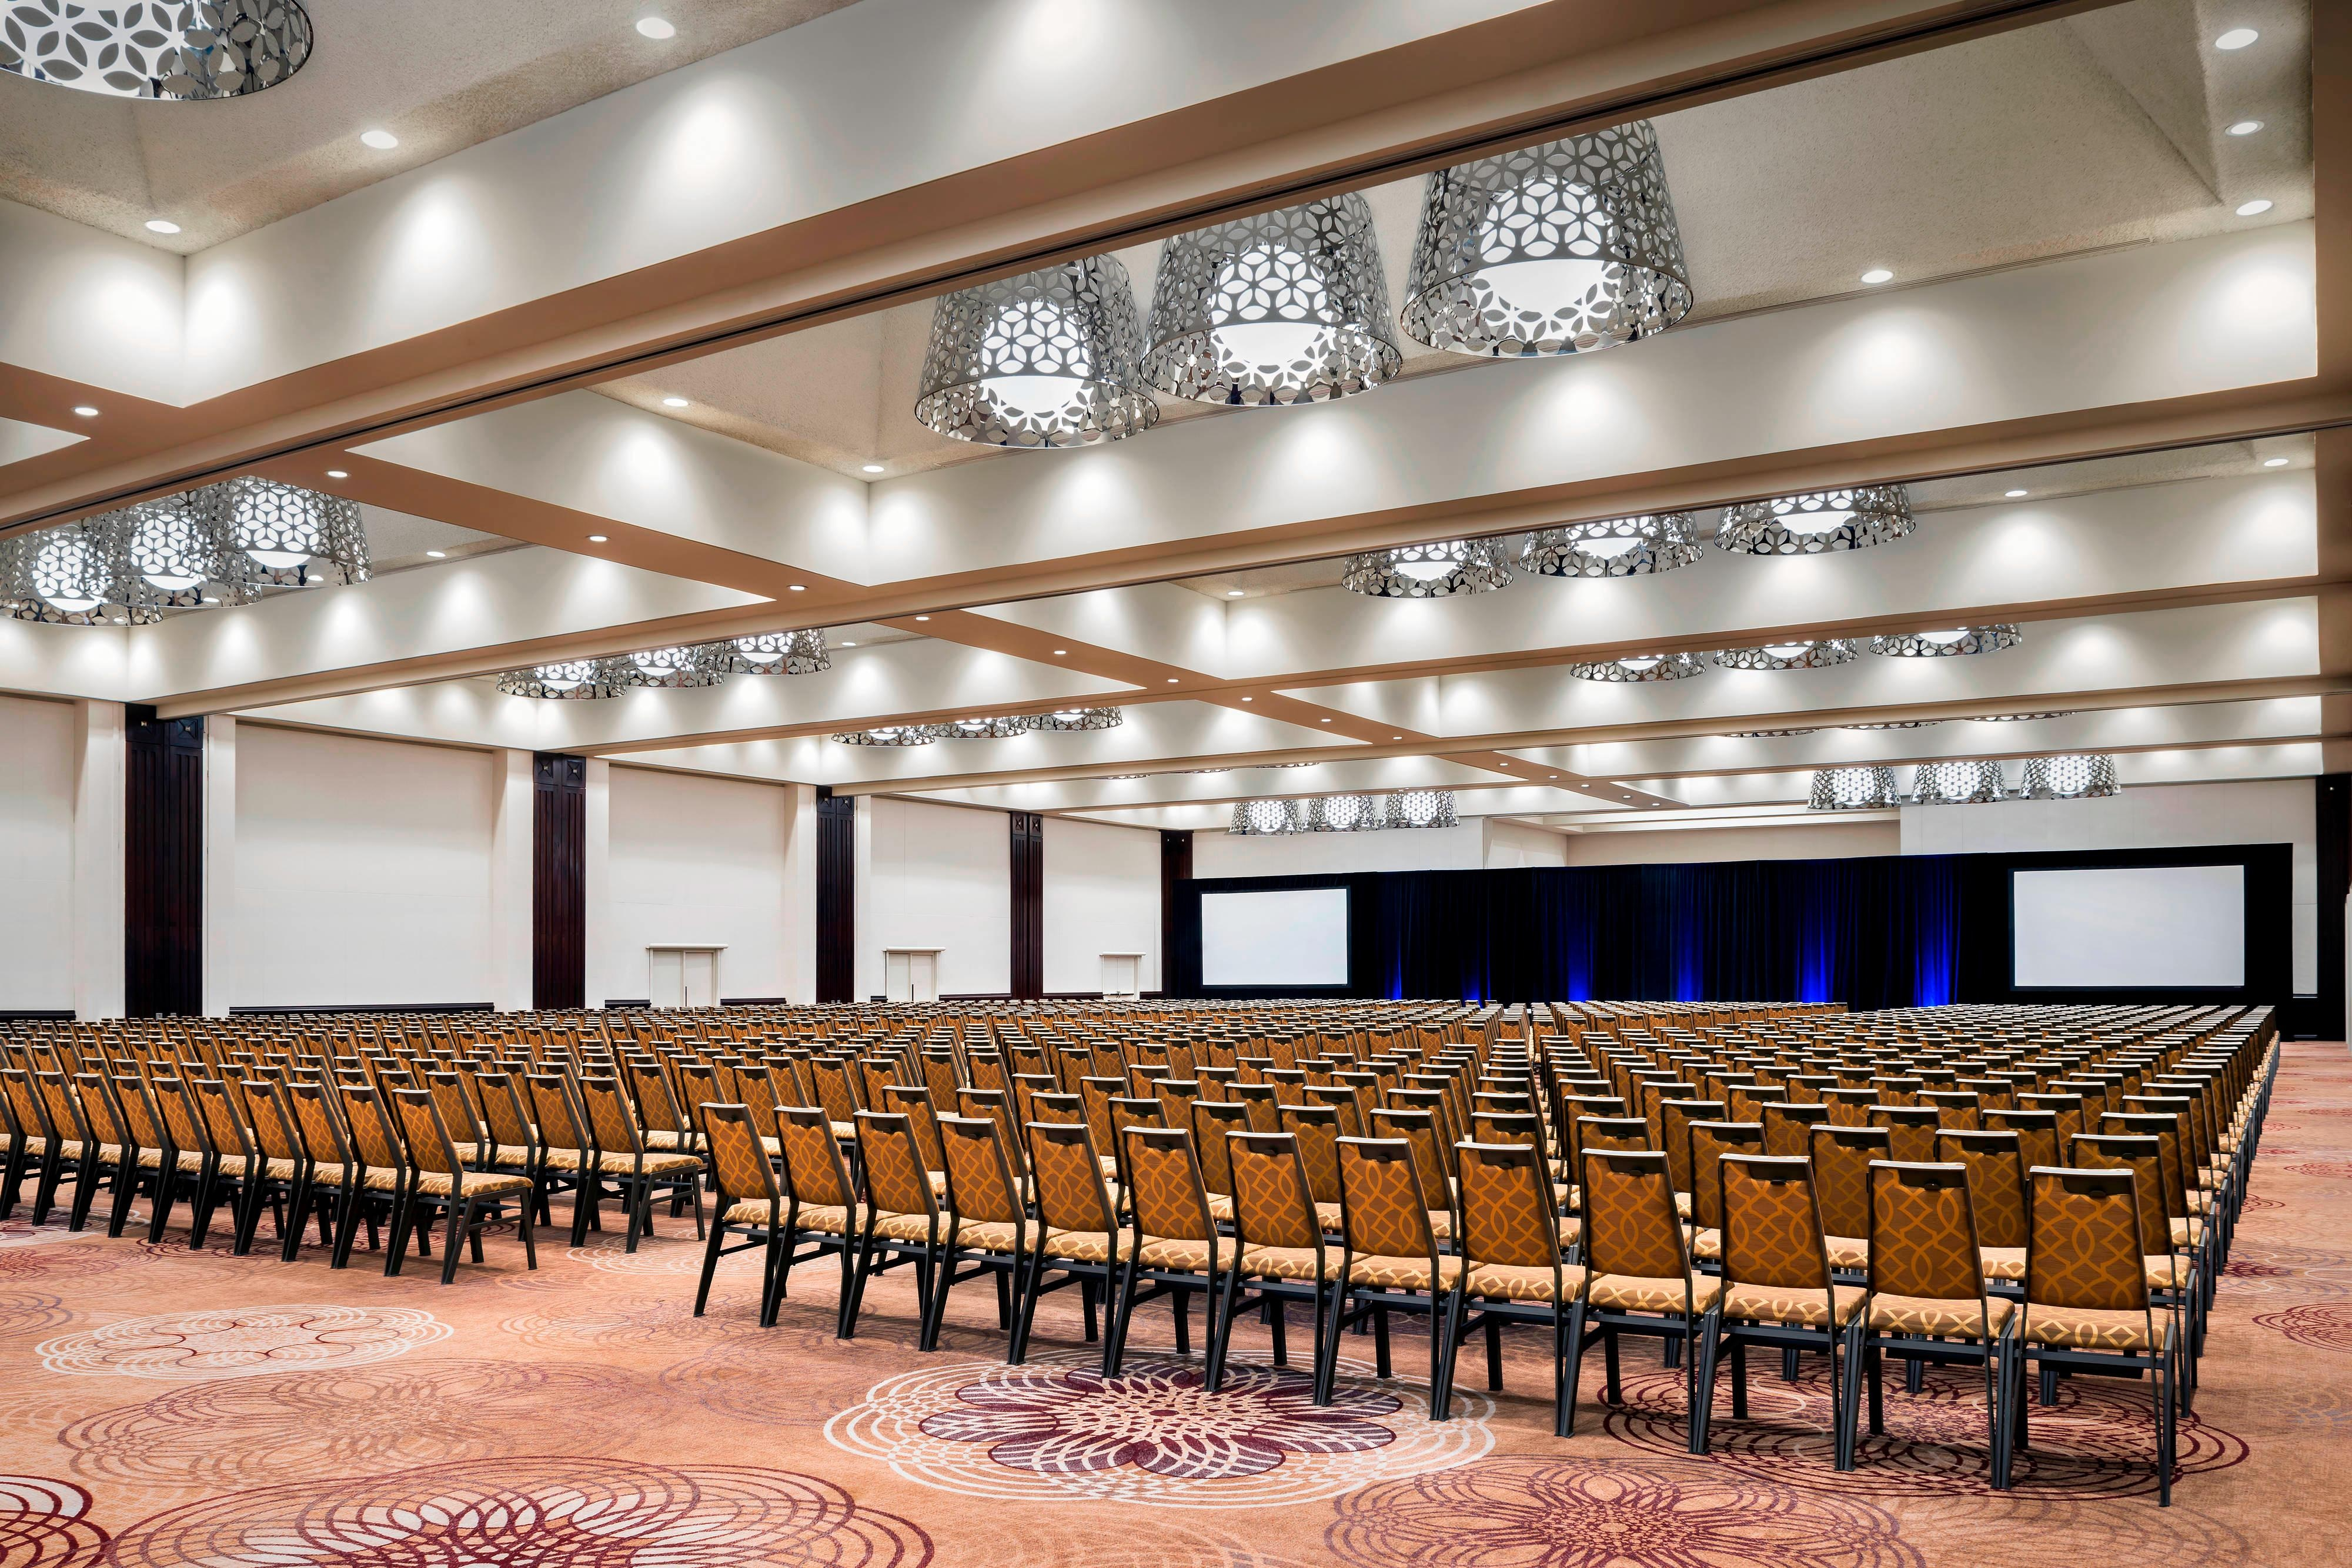 Grand Ballroom Theatre-Style Meeting